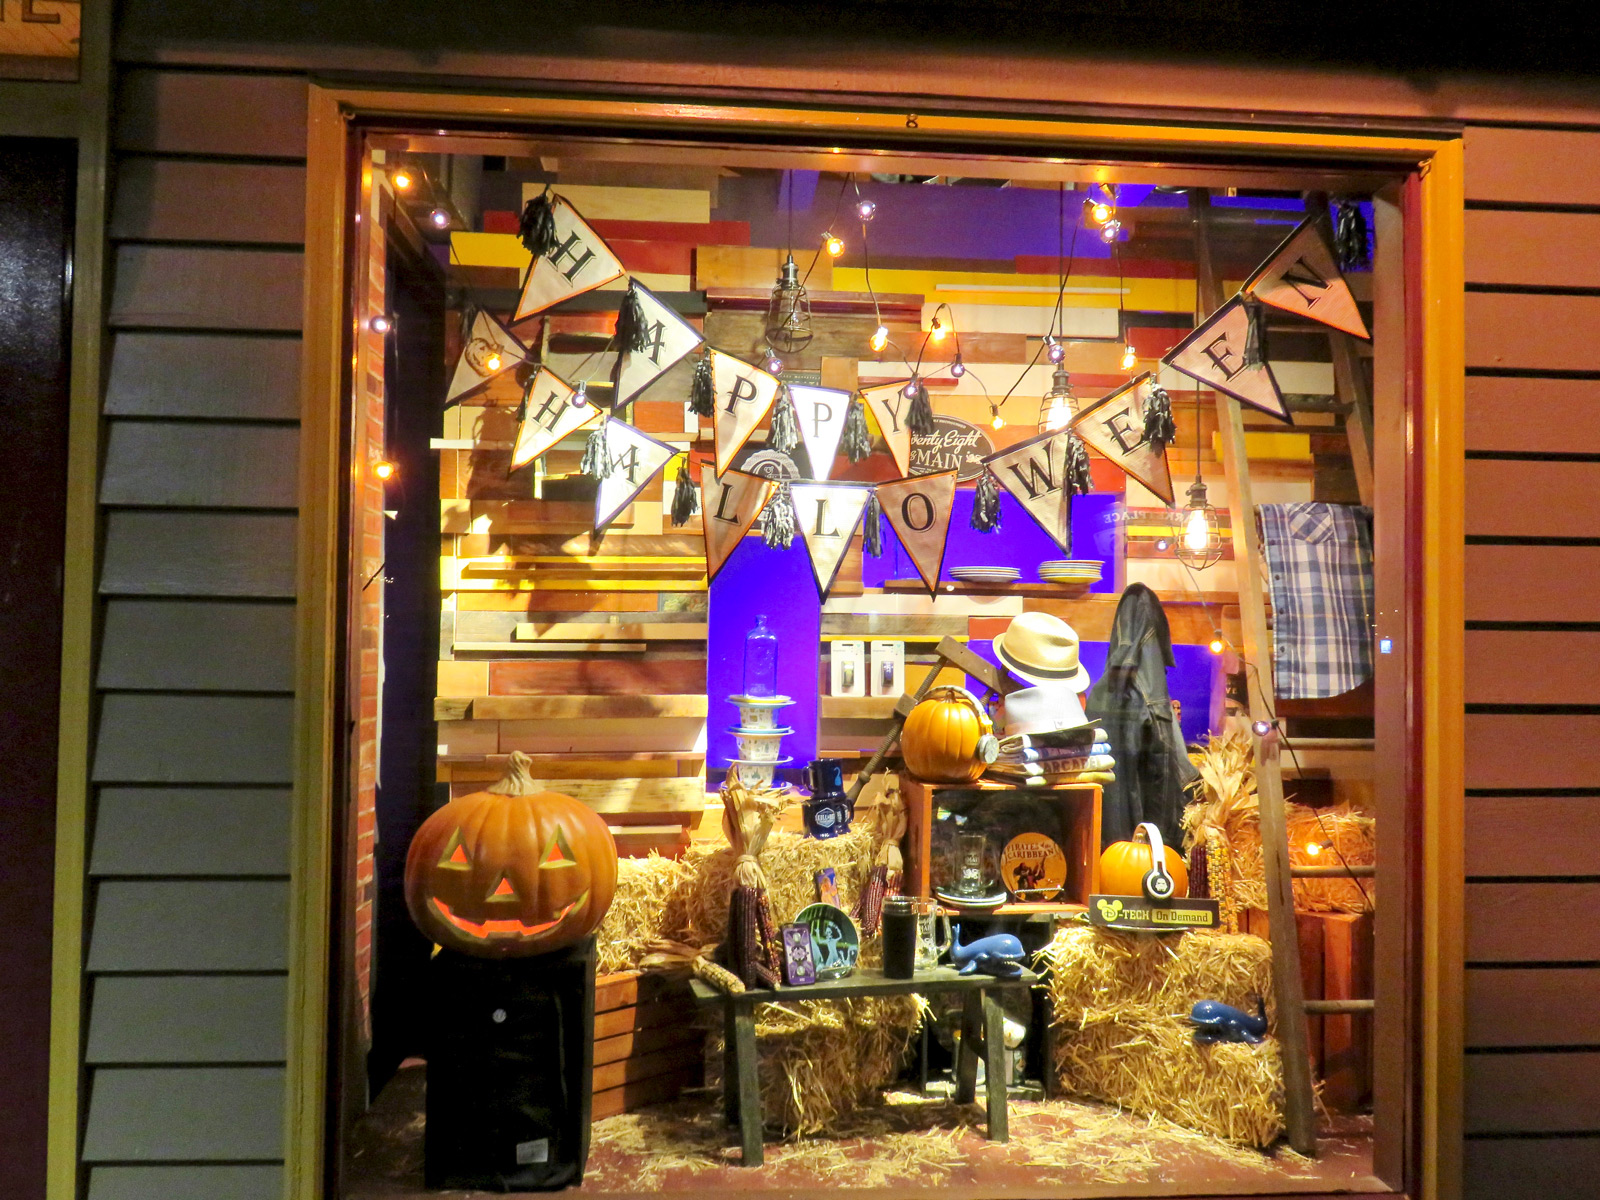 Hay and pumpkins, the good mix for a Halloween window display.